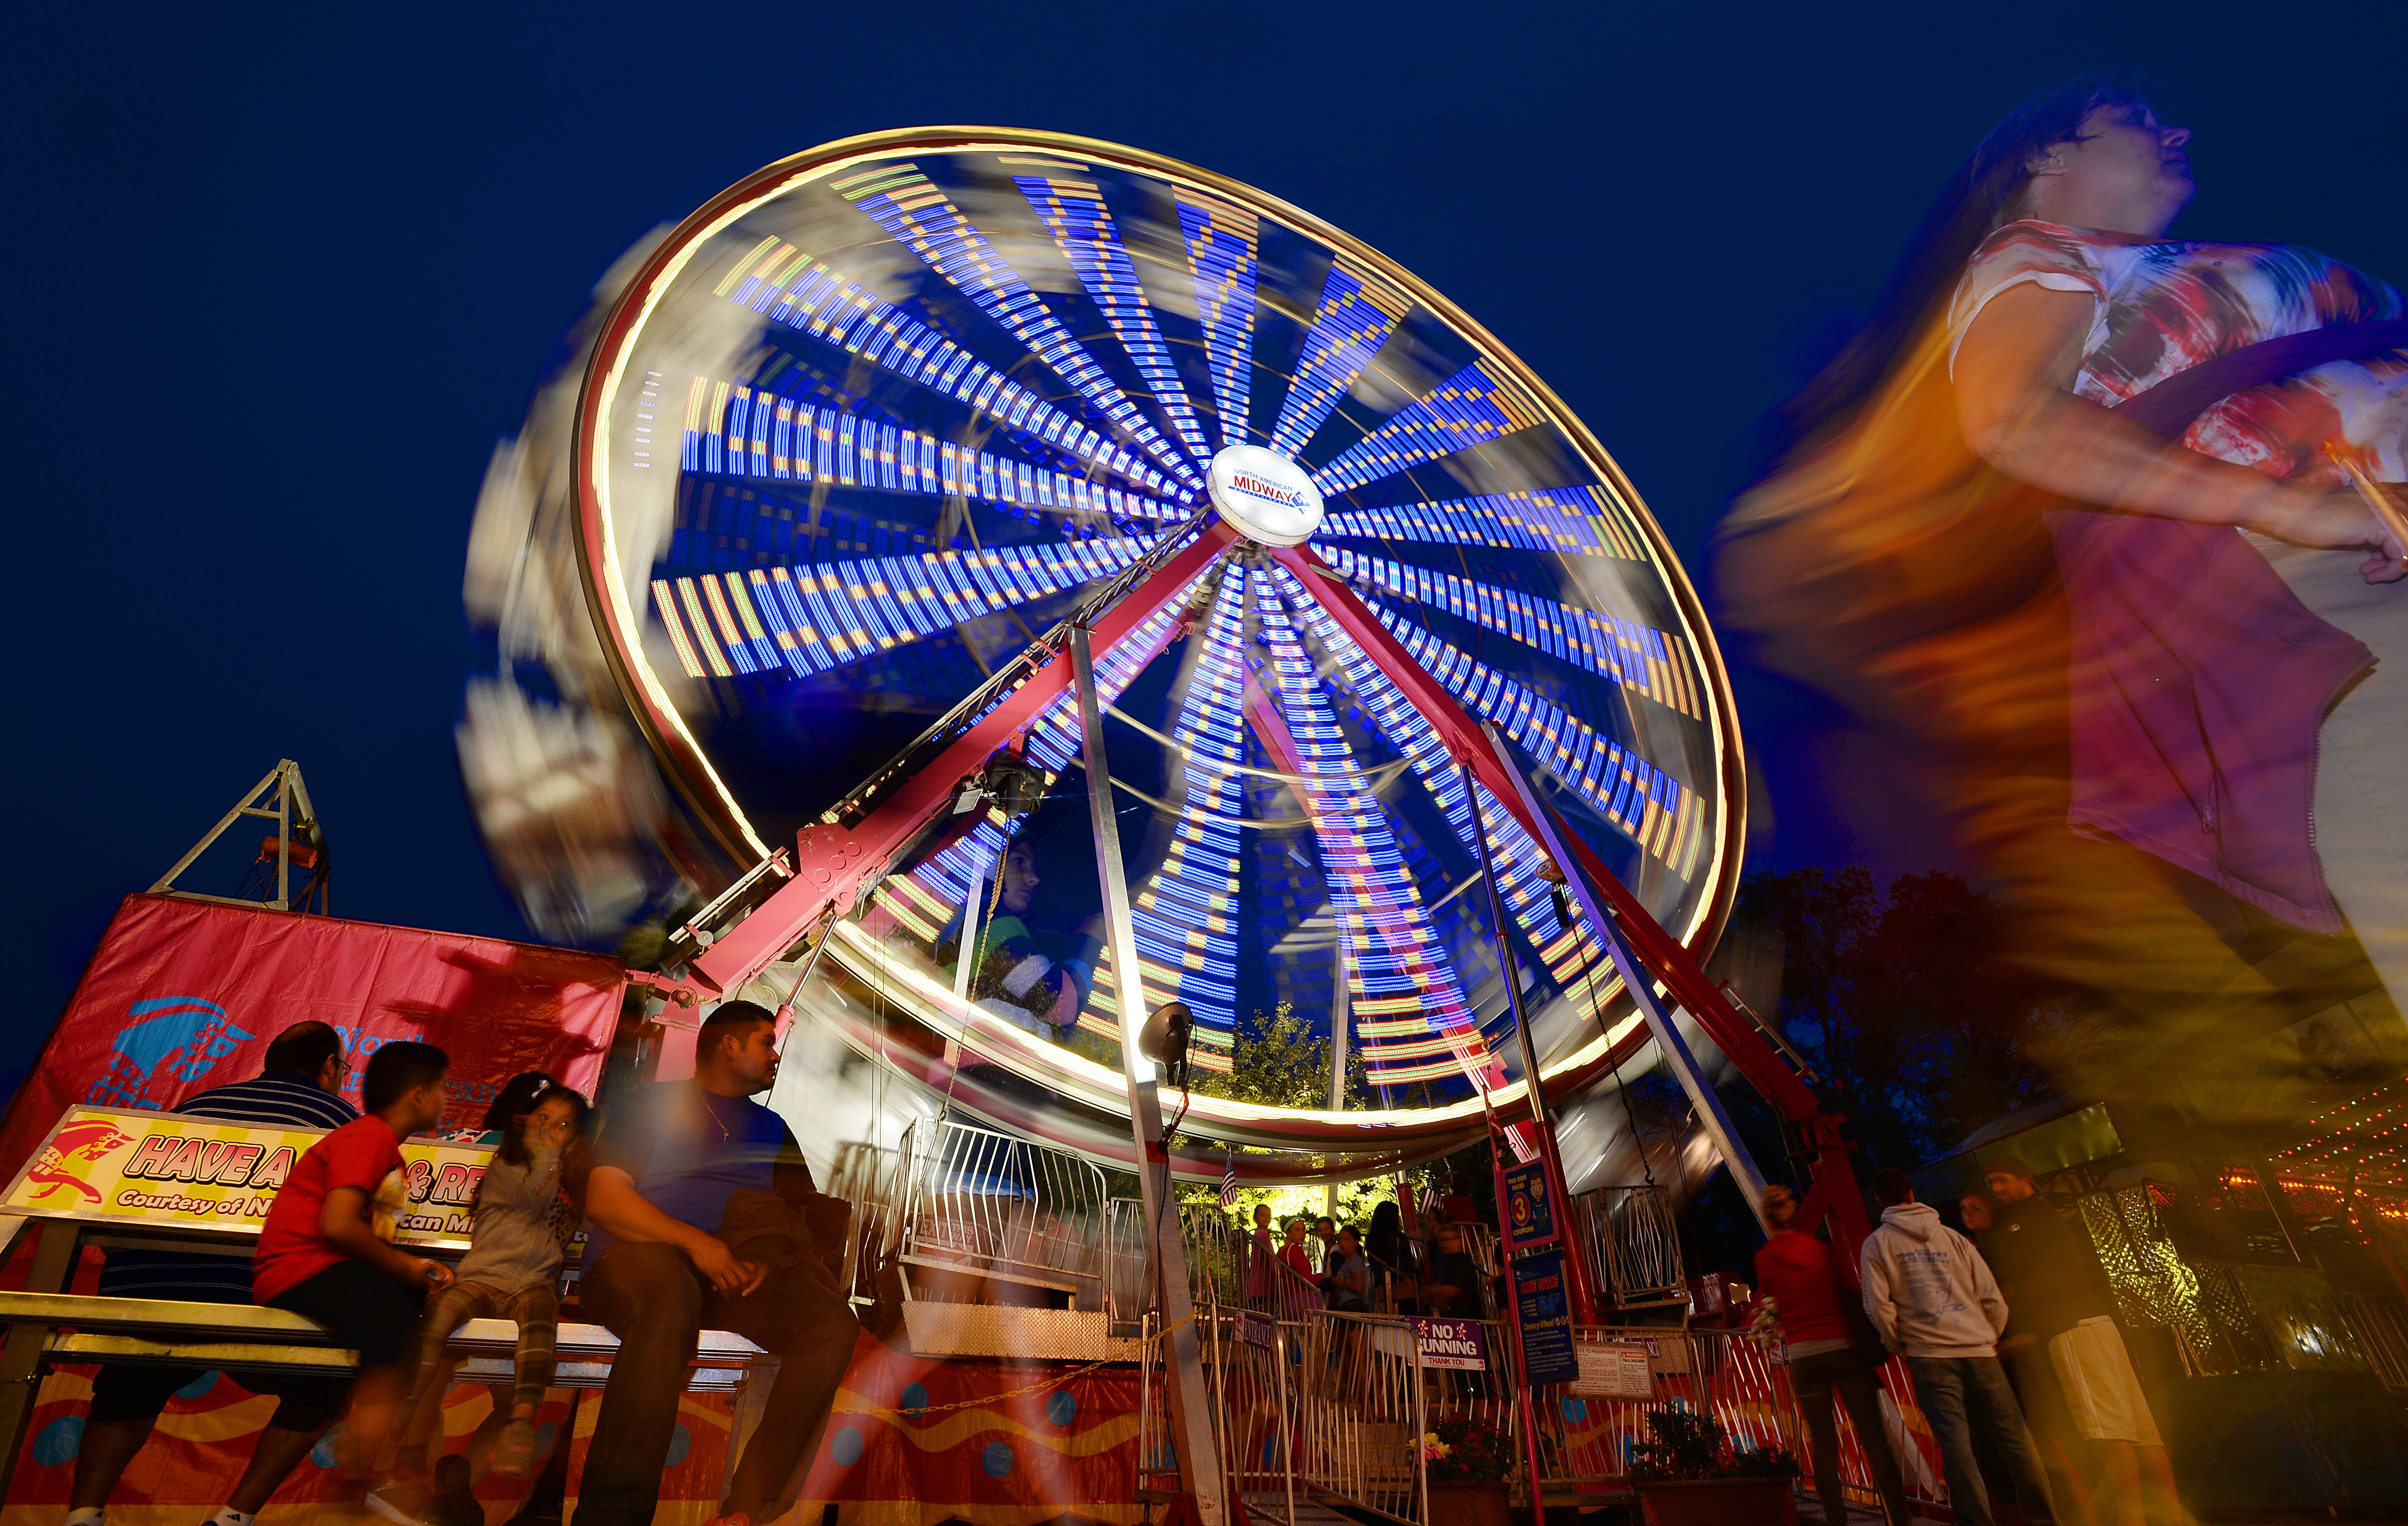 The first day of Buffalo Grove Days had the Ferris wheel spinning, thrilling young and old as a light rain started to fall Thursday.